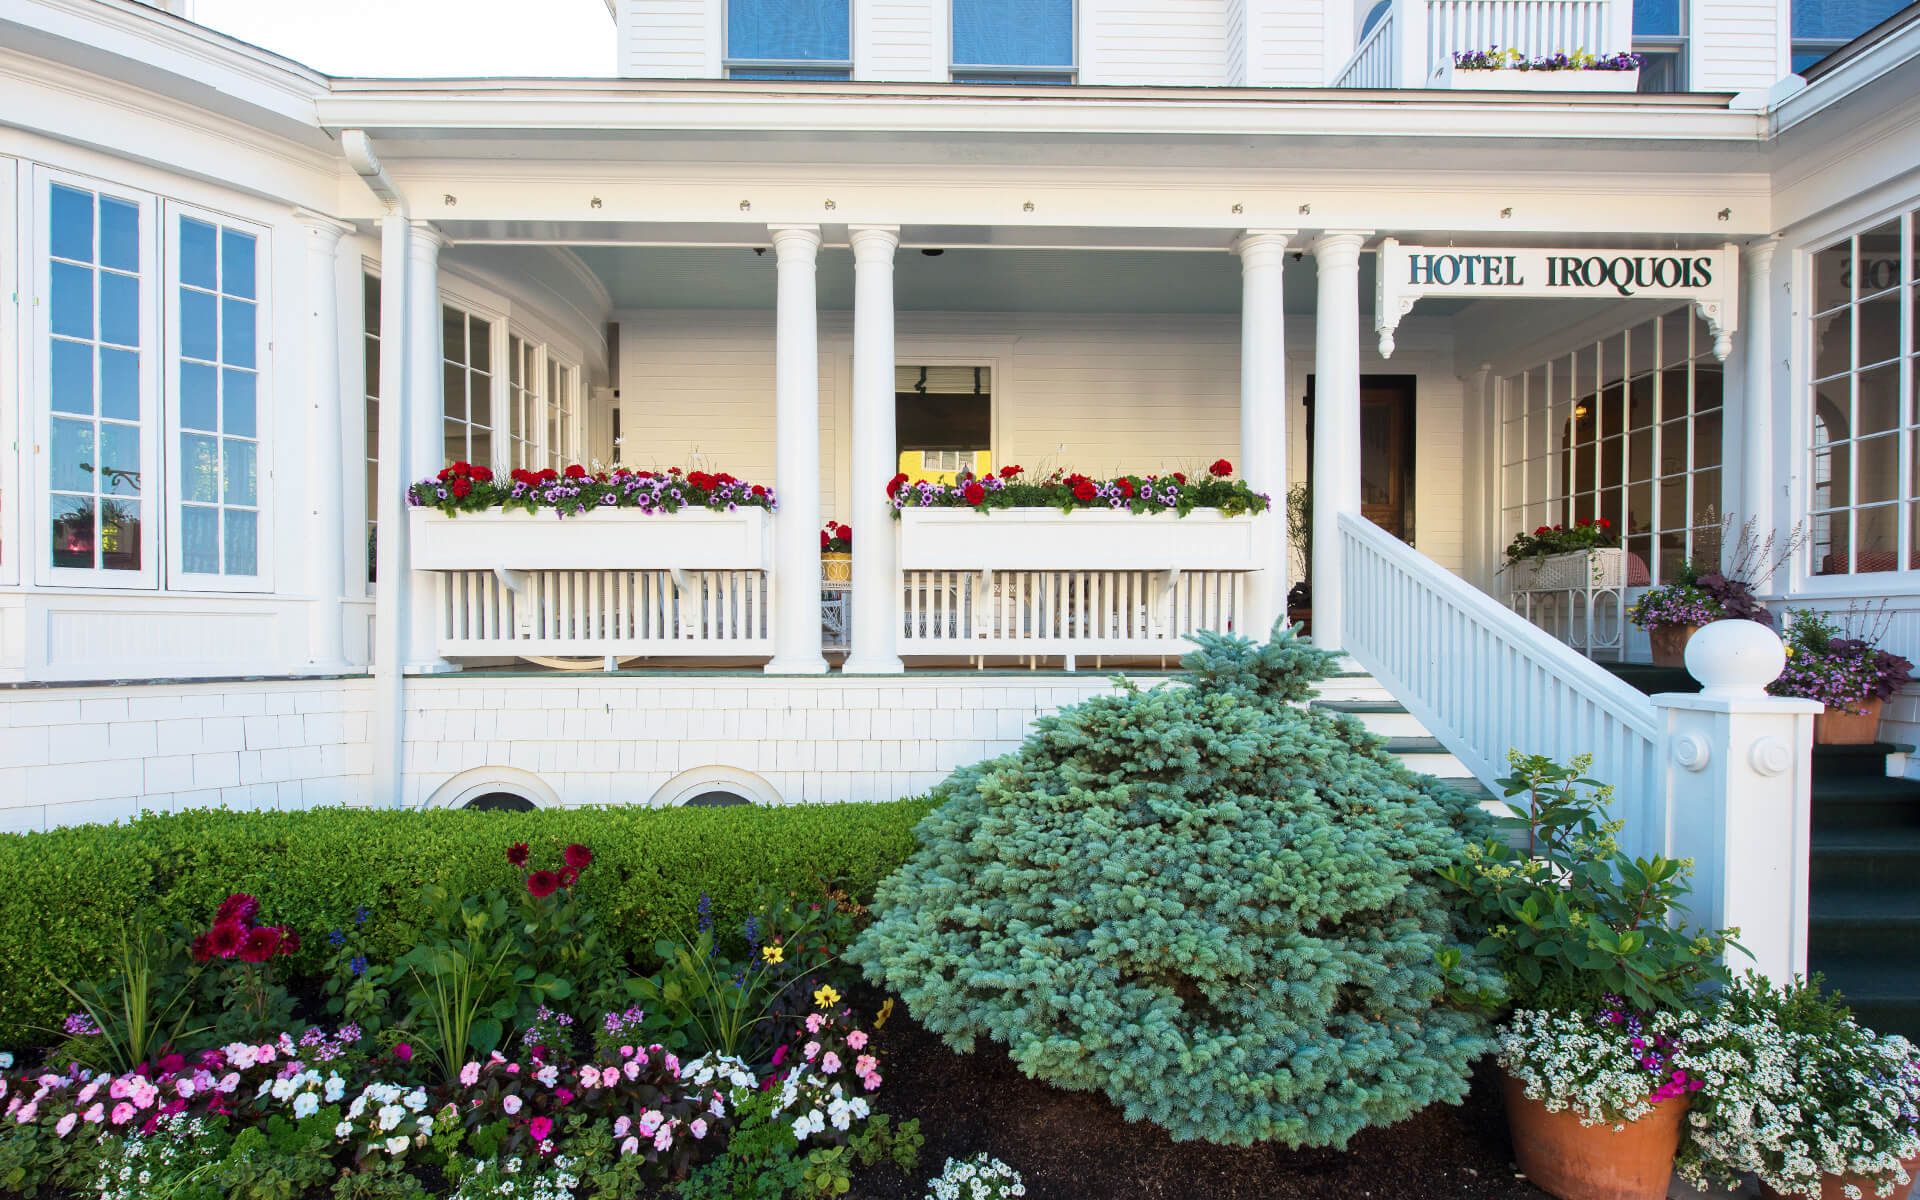 hotel iroquois entrance with porch, hedges, and pink and white flower landscaping